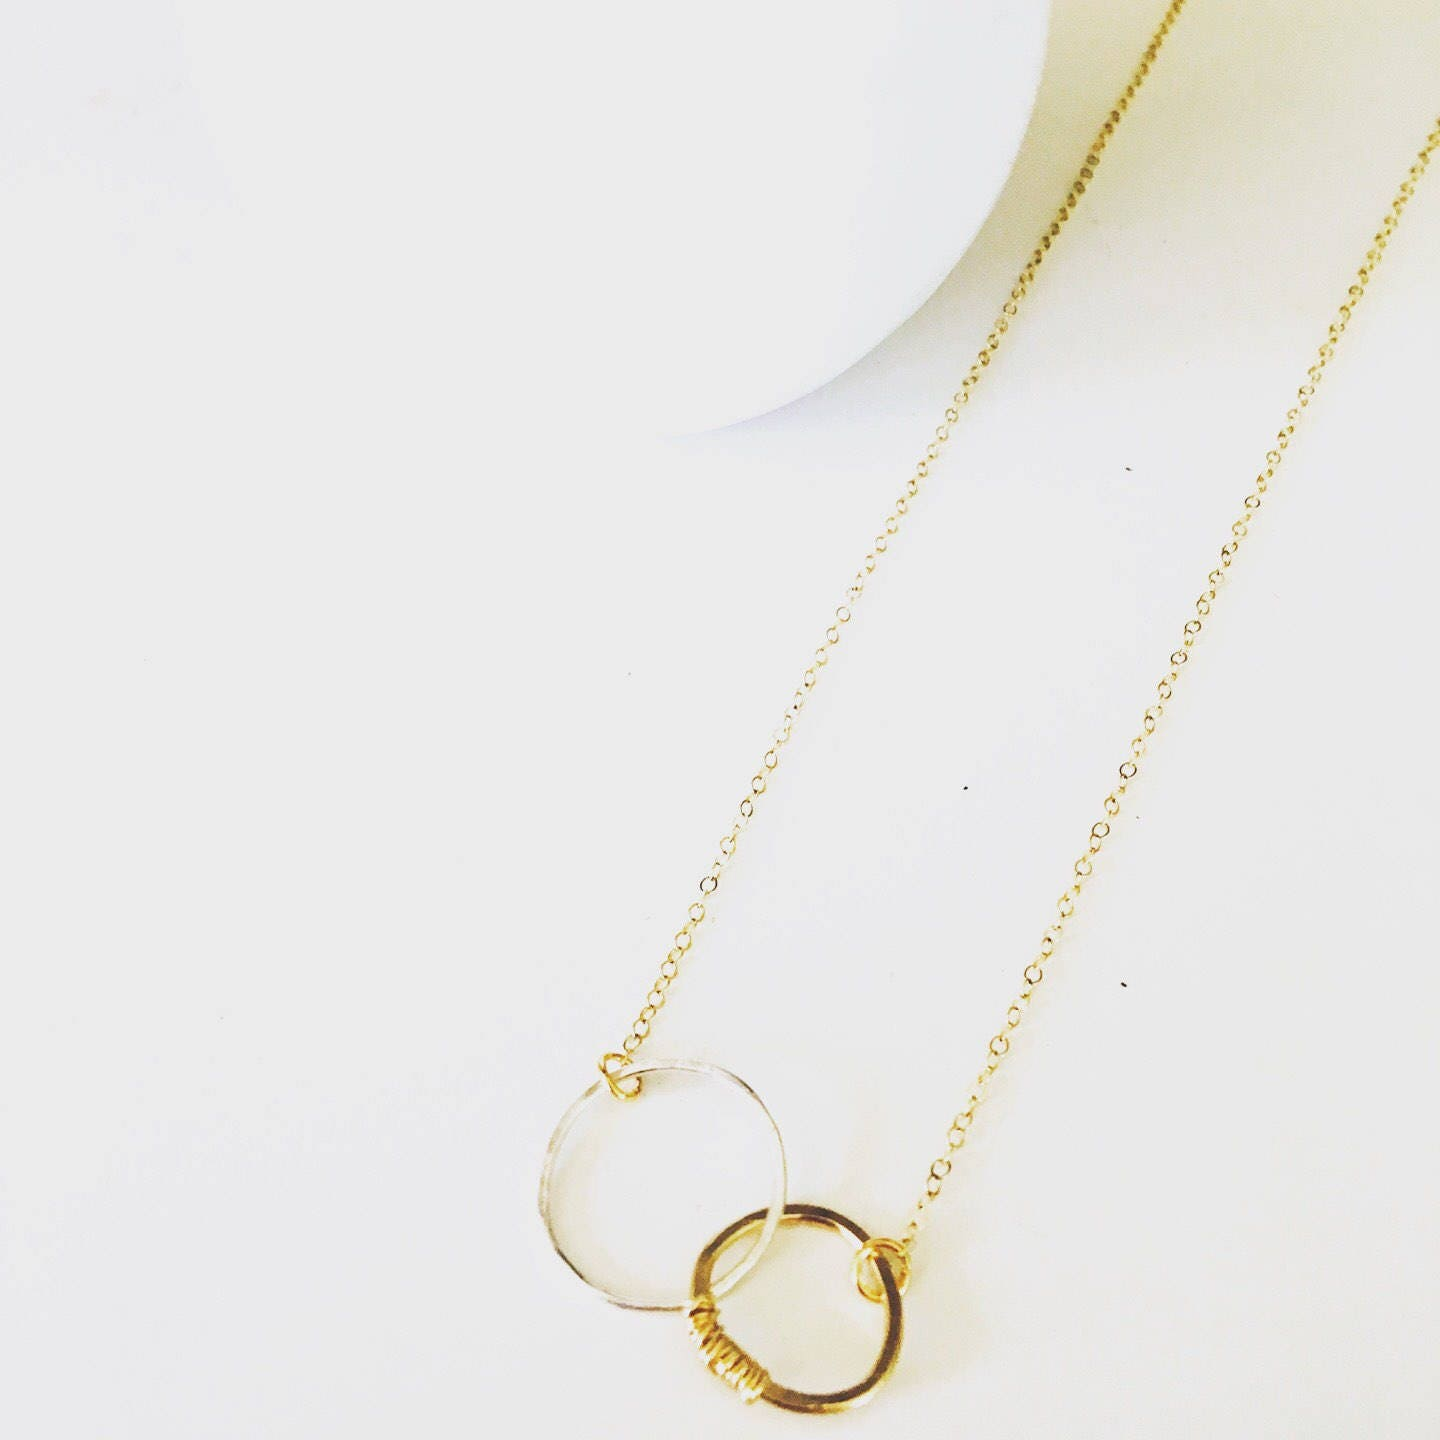 The Laney Necklace// hammered gold fill necklace// hammered sterling necklace// circle charm necklace// hammered circle jewelry// gold fill/